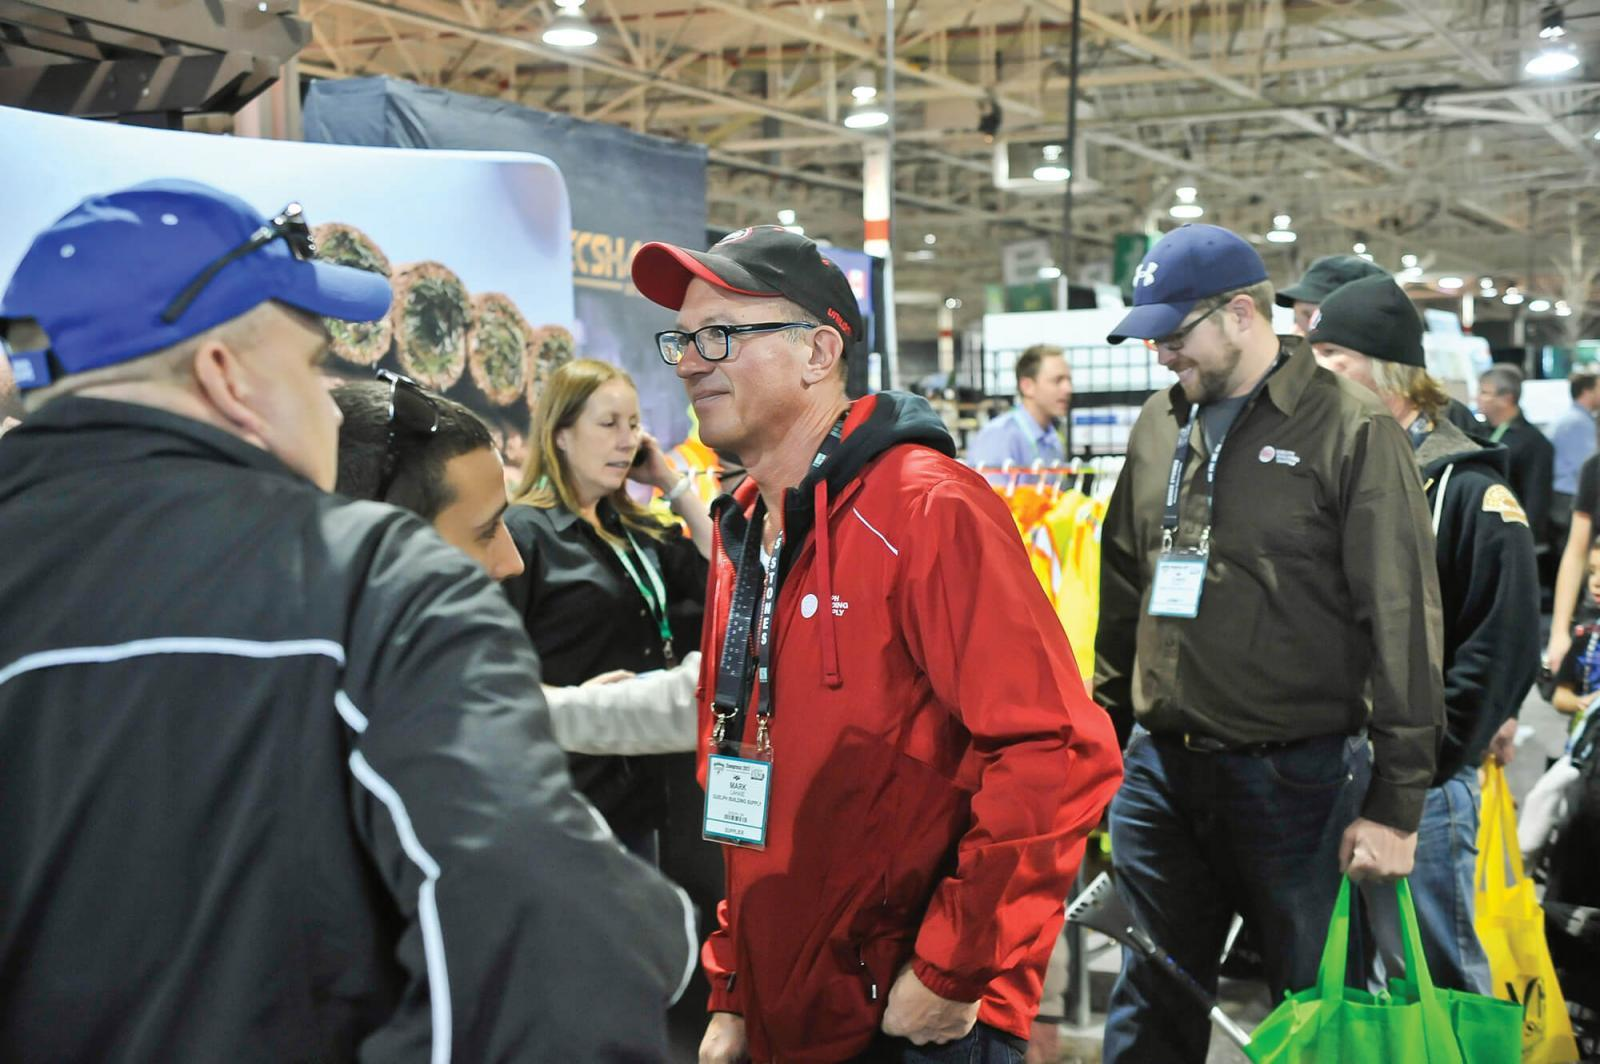 Congress '17 saw an increase in attendees  for the over 600 exhibitors.